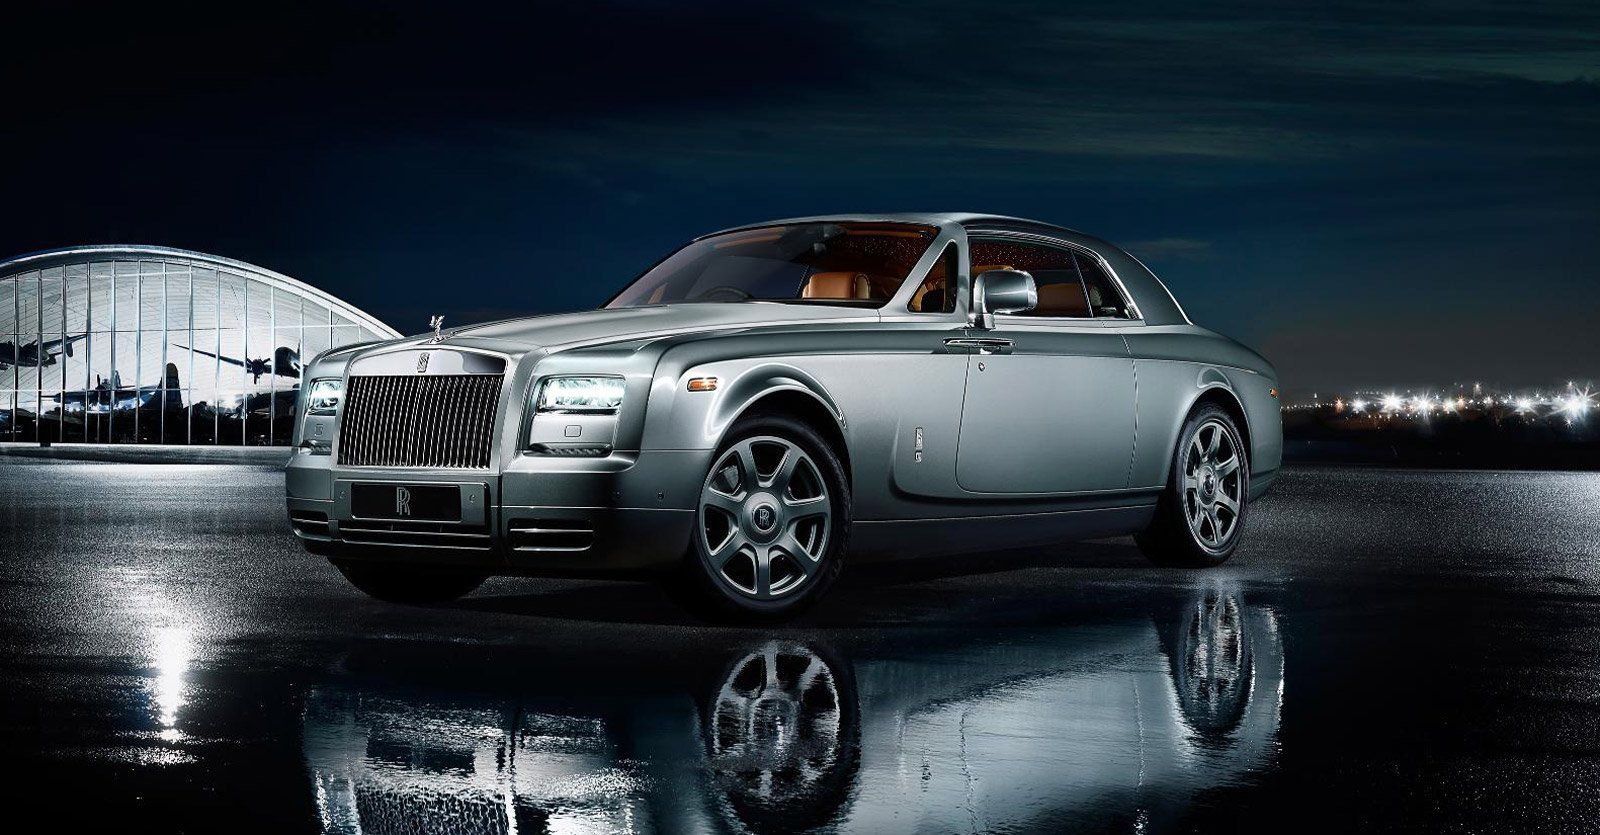 20 Facts You Never Knew About Rolls Royce